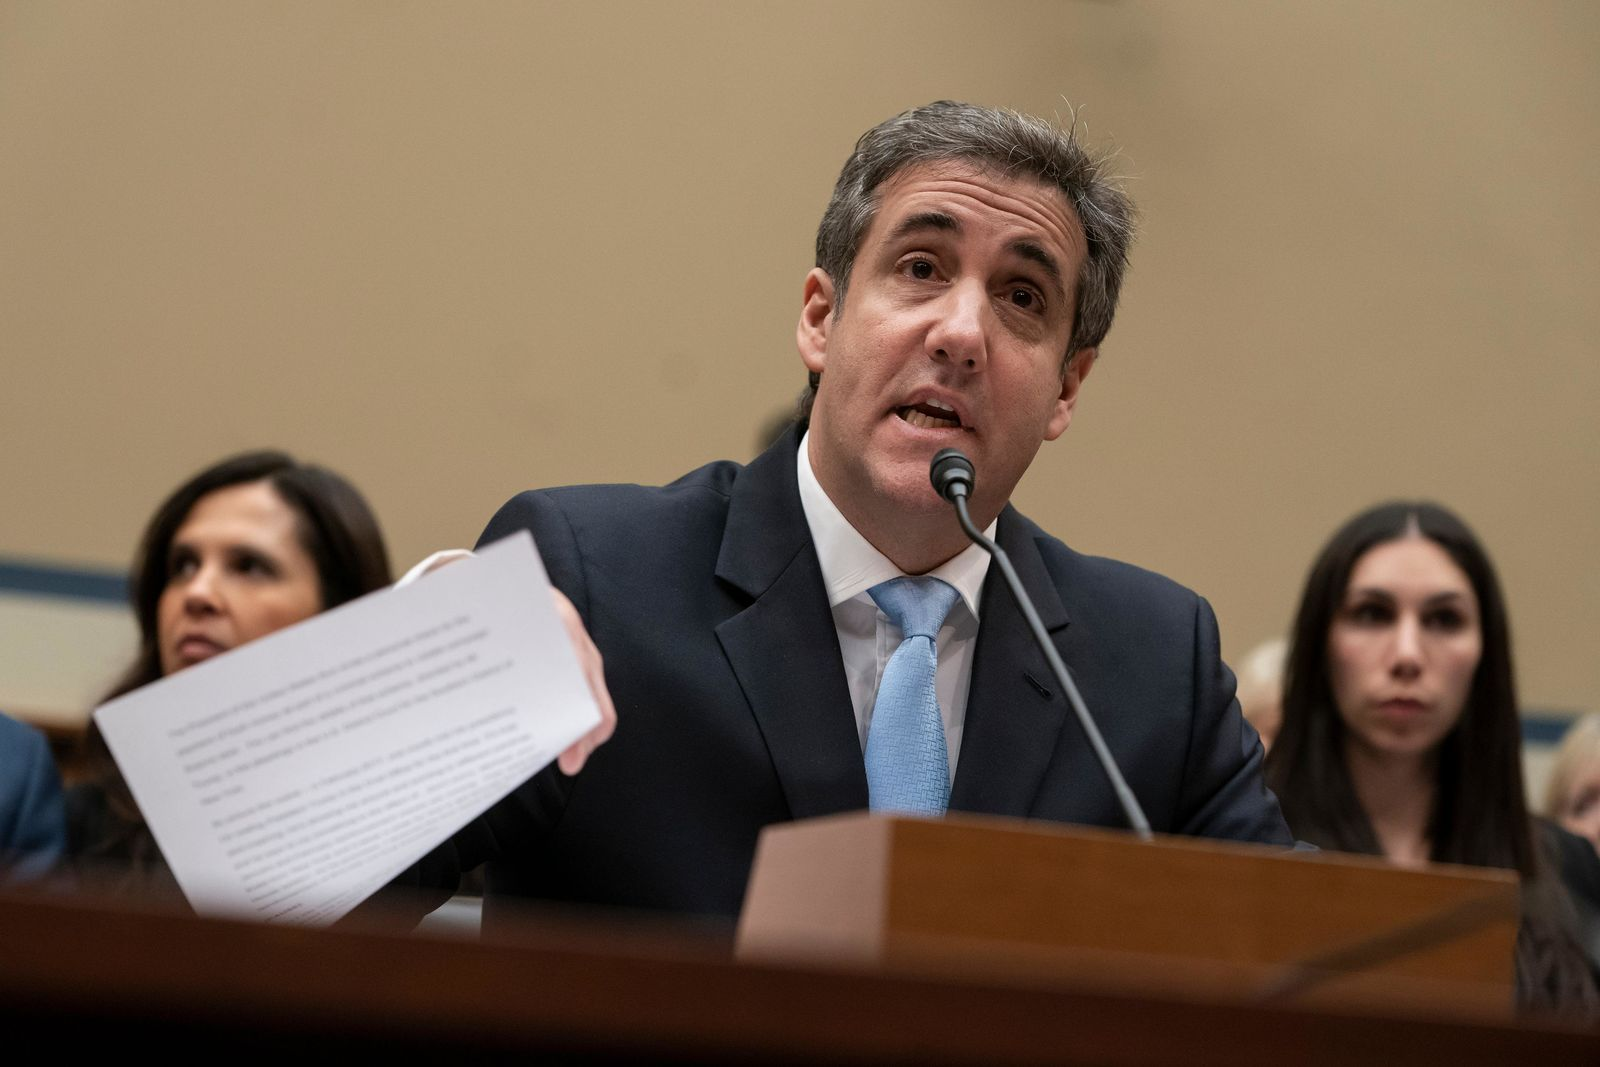 FILE - In this Feb. 27, 2019, file photo, Michael Cohen, President Donald Trump's former personal lawyer, reads an opening statement as he testifies before the House Oversight and Reform Committee on Capitol Hill in Washington.{ } to porn actress Stormy Daniels and Playboy centerfold Karen McDougal. (AP Photo/J. Scott Applewhite, File)